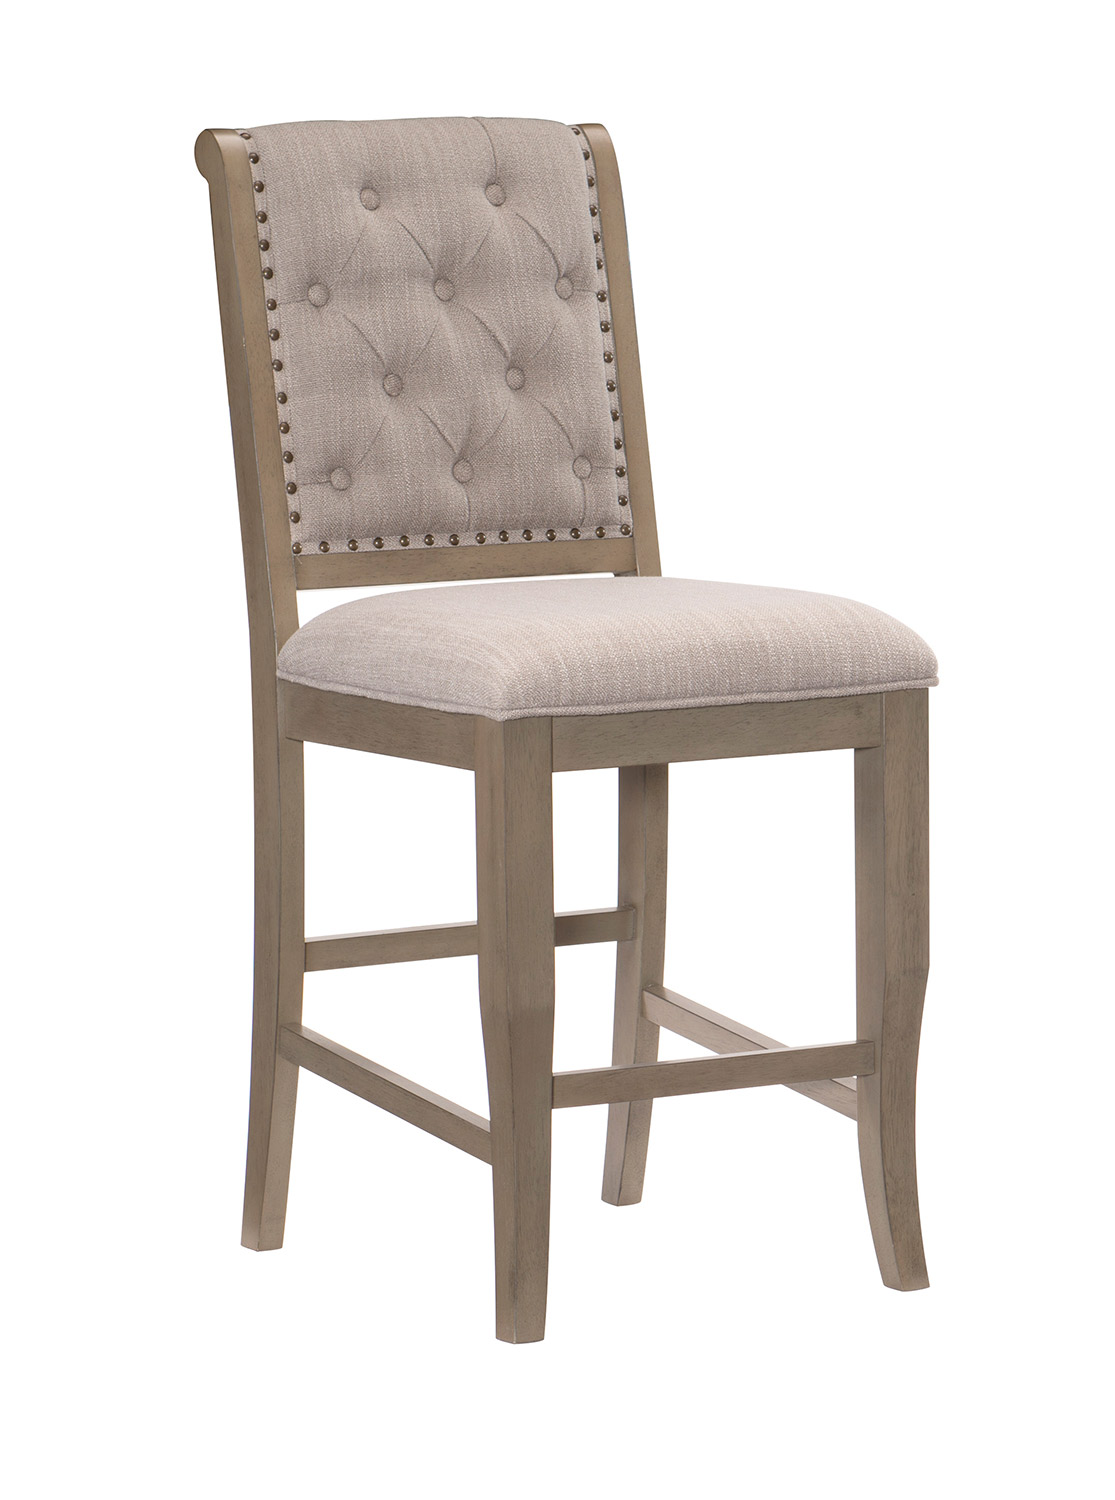 Homelegance Vermillion Counter Height Chair - Bisque